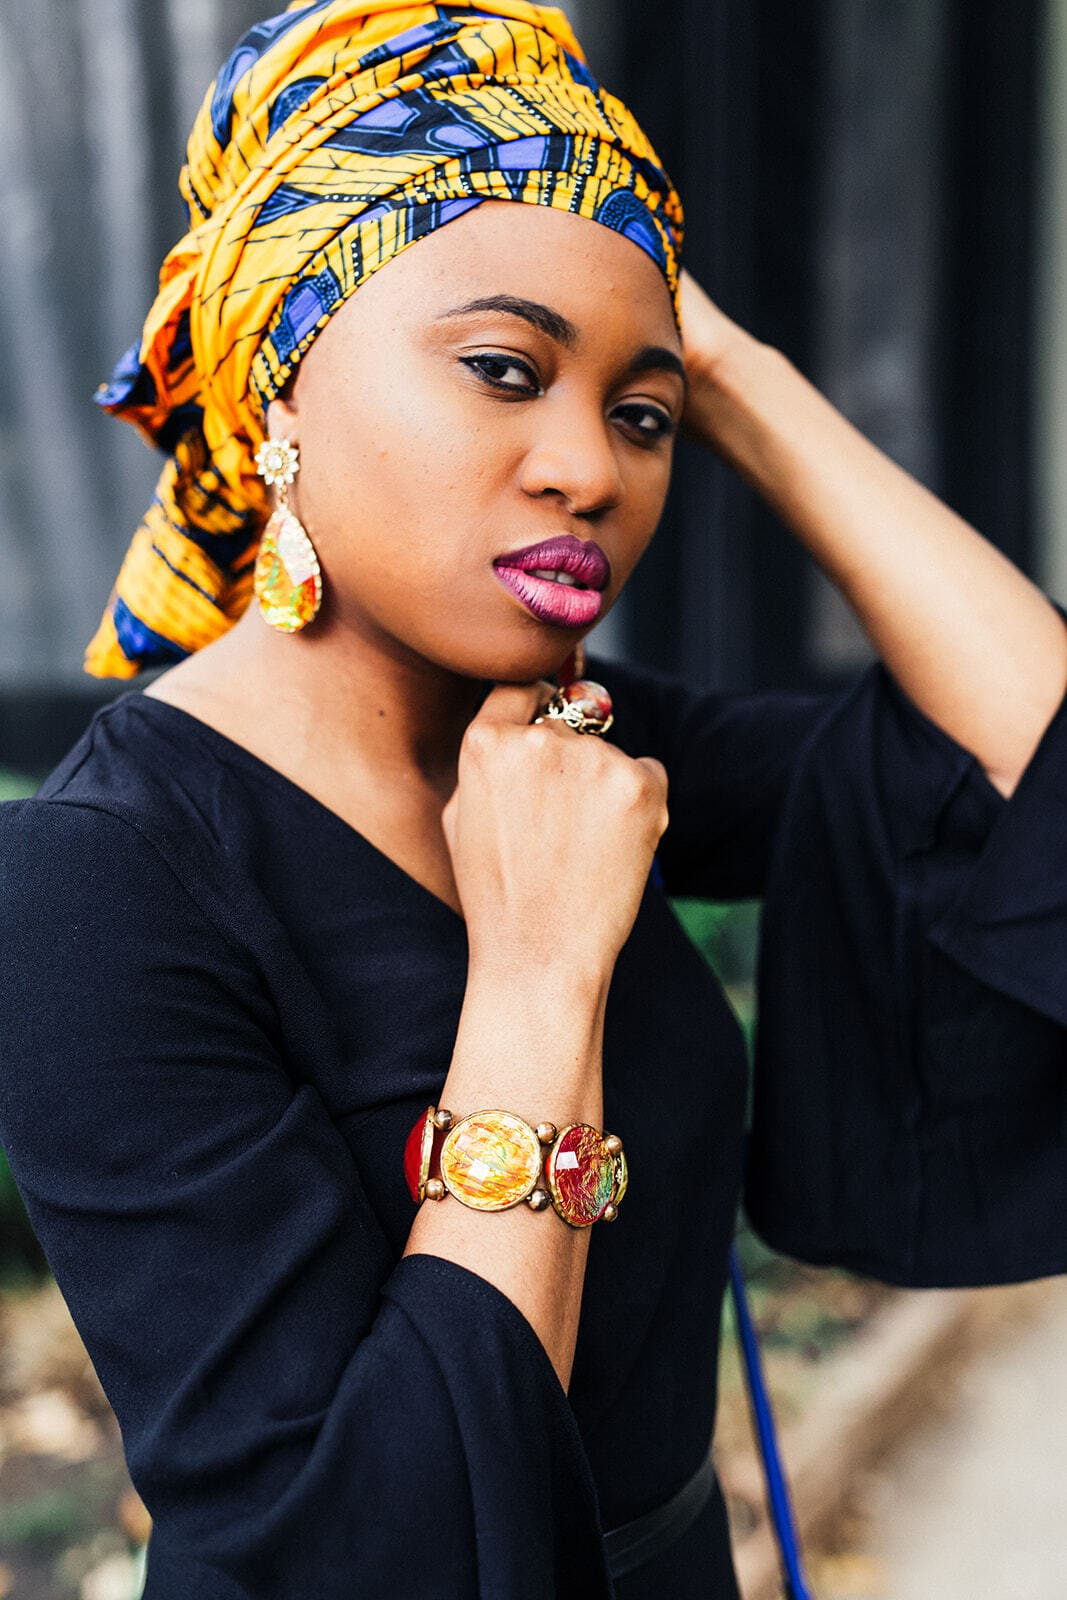 Check out the best African head wraps in 2019 and where to get them. Among these ankara and kente headscarves, #5 is my absolute favorite! All your favorite styles in one place (+find out where to get them). Click to see all! #africantrends #kitenge #headwear